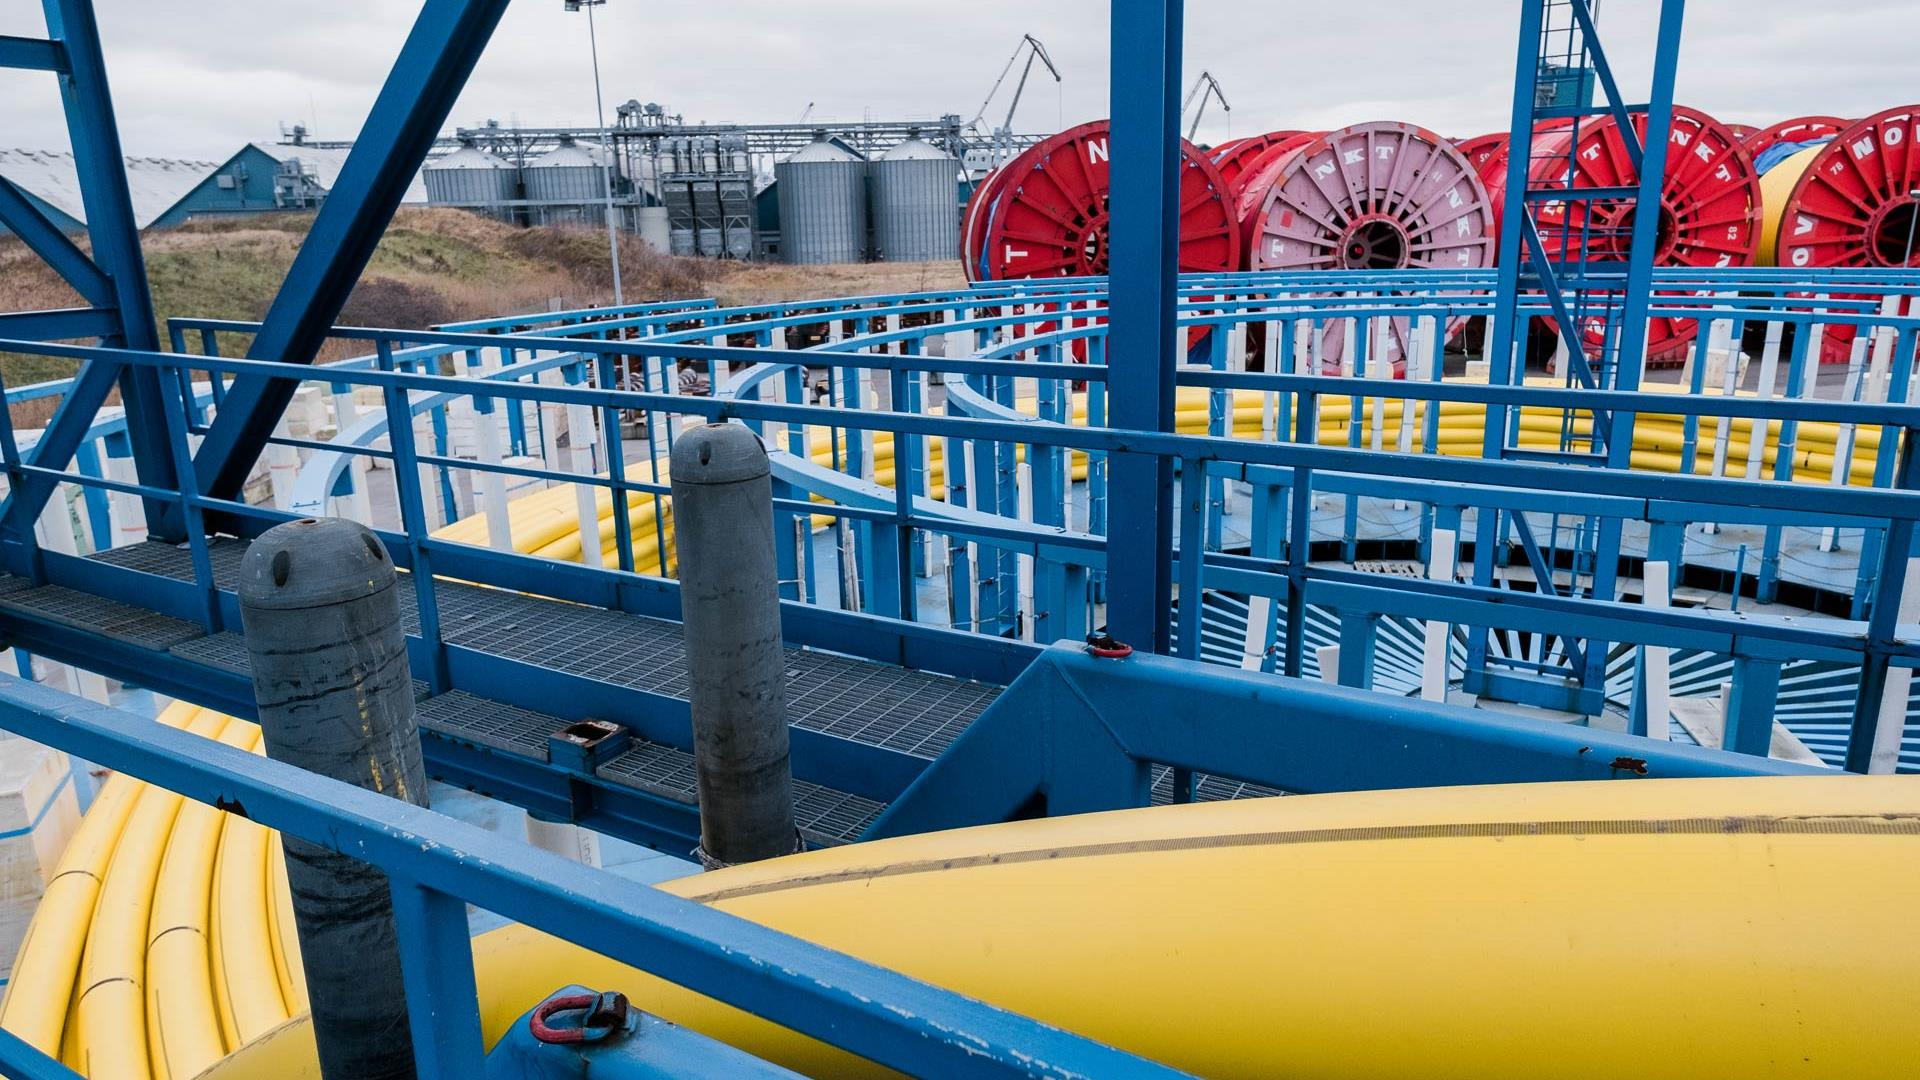 Flexibles subsea pipe loadout on an overcast day in Kaldunborg, Denmark